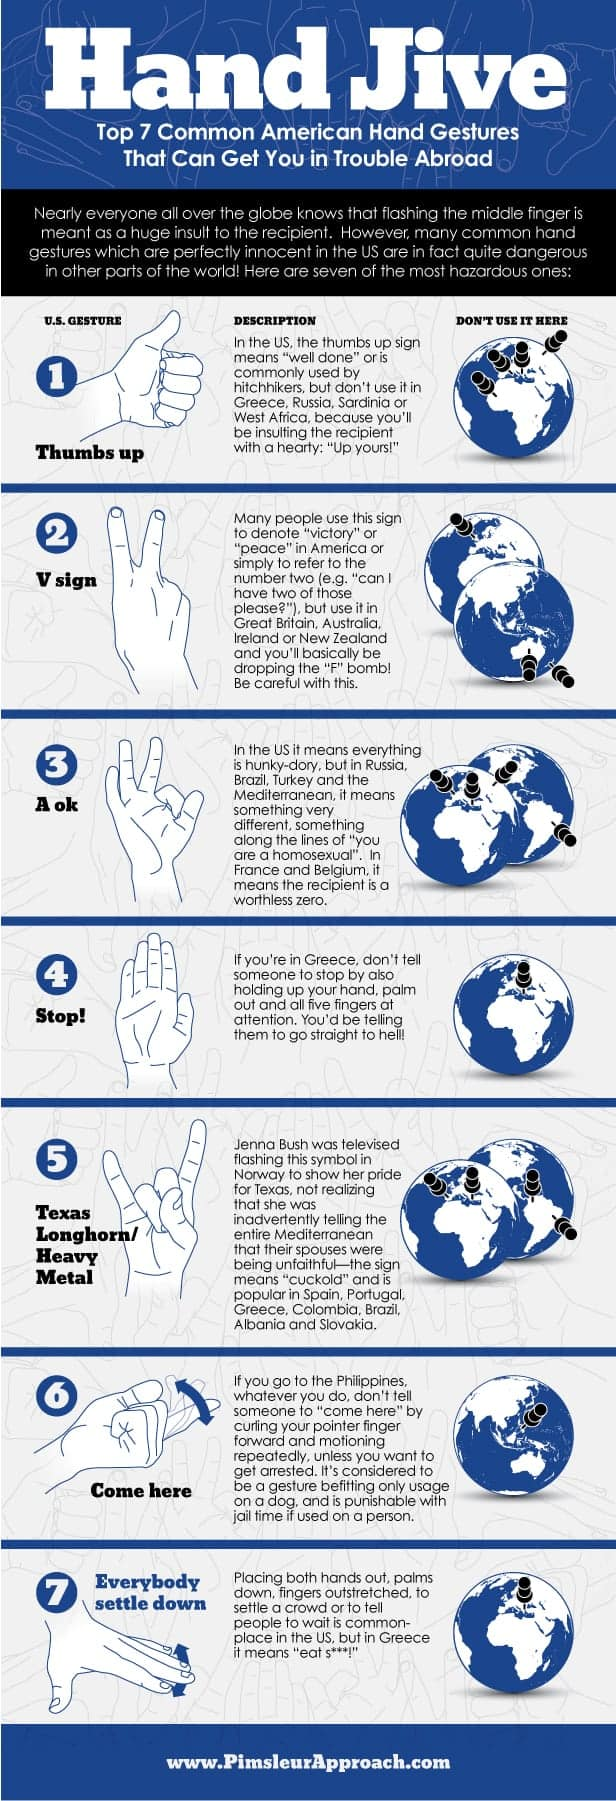 American hand gestures in different cultures 7 ways to get american hand gestures in different cultures 7 ways to get yourself in trouble abroad biocorpaavc Image collections